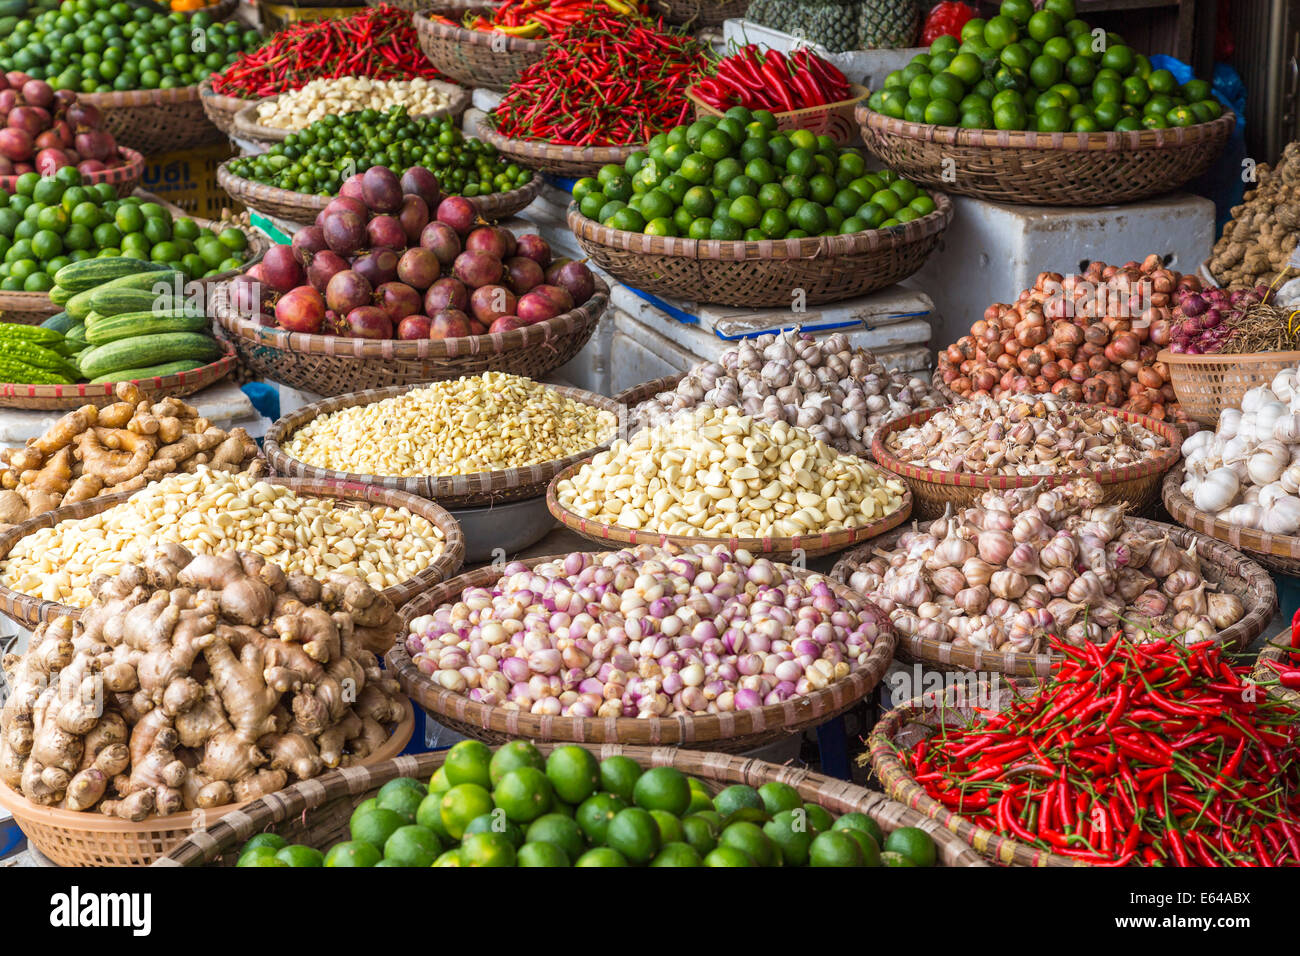 Vegetable stall in market, Hanoi, Vietnam - Stock Image